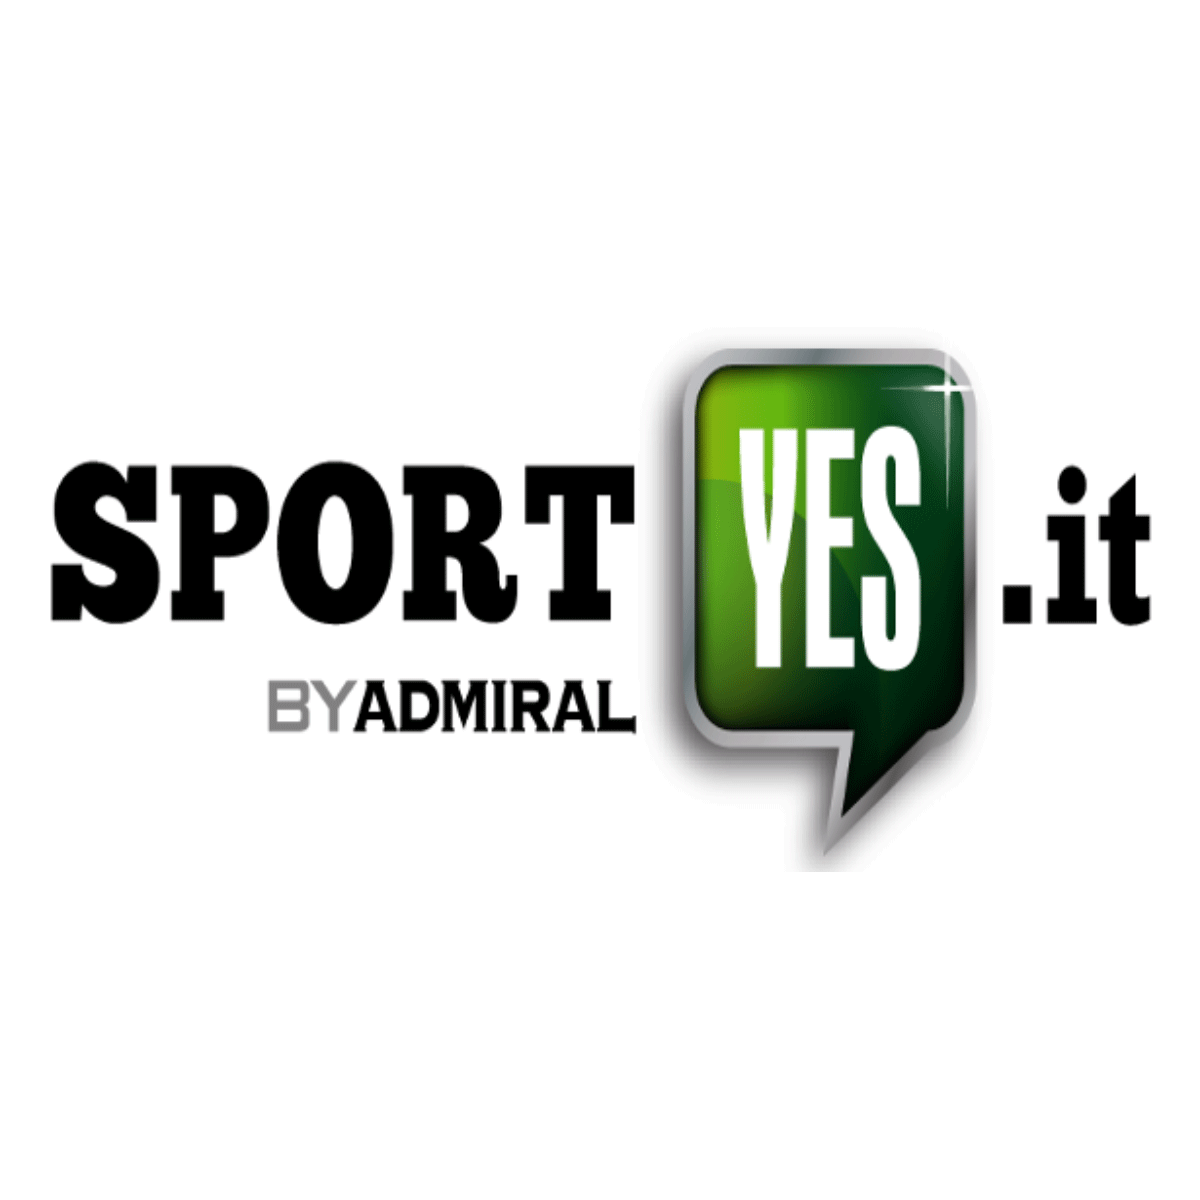 sport yes